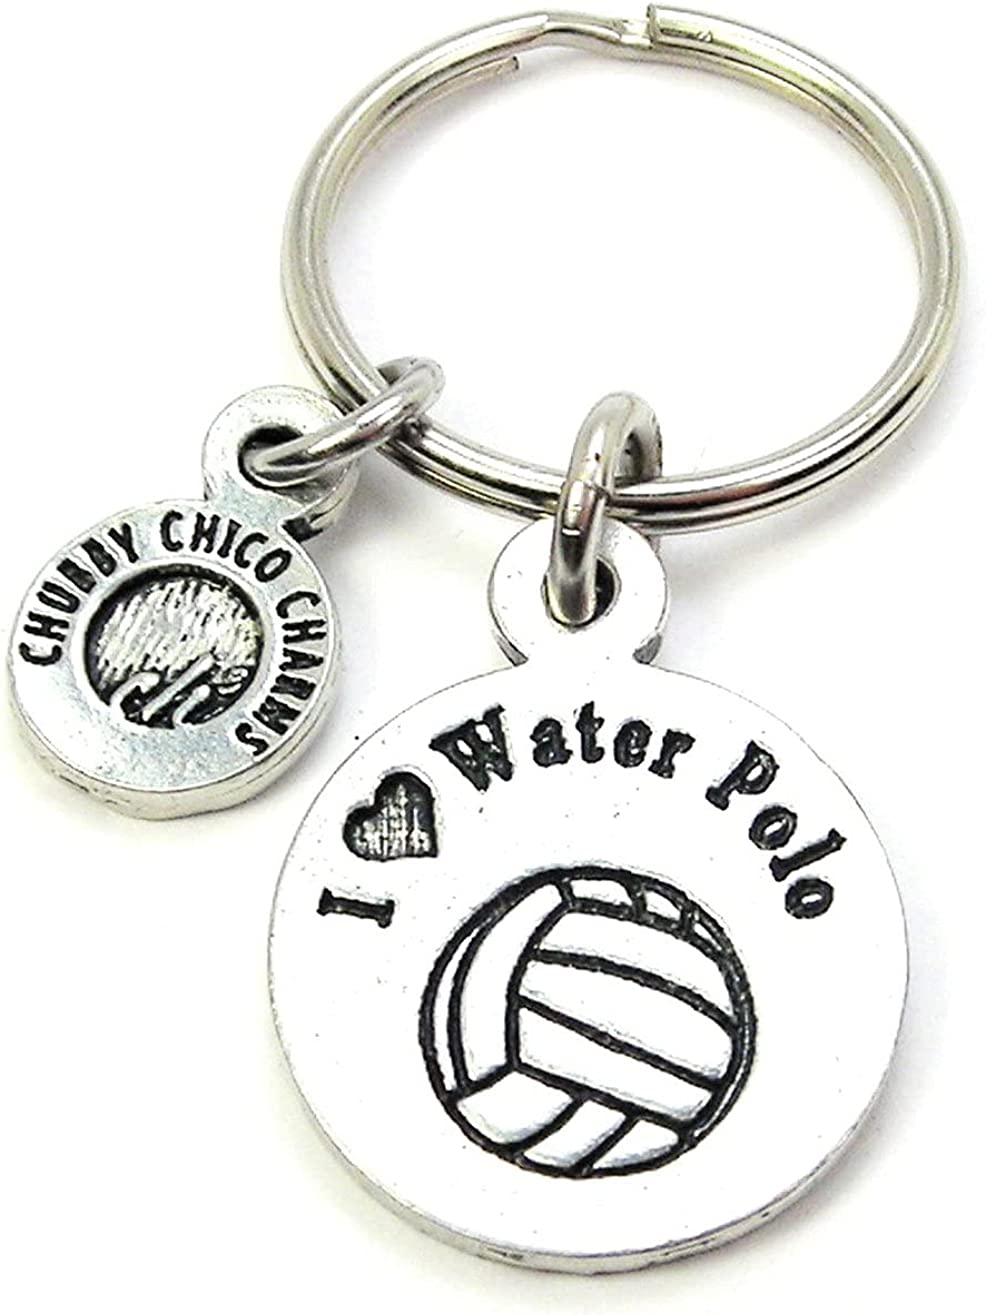 ChubbyChicoCharms I Love Water Polo Pewter Charm On Stainless Steel Keyring Key Ring Key Chain Keychain for Women, Men, Teens, Young Adults, Water Sports, Team Sports